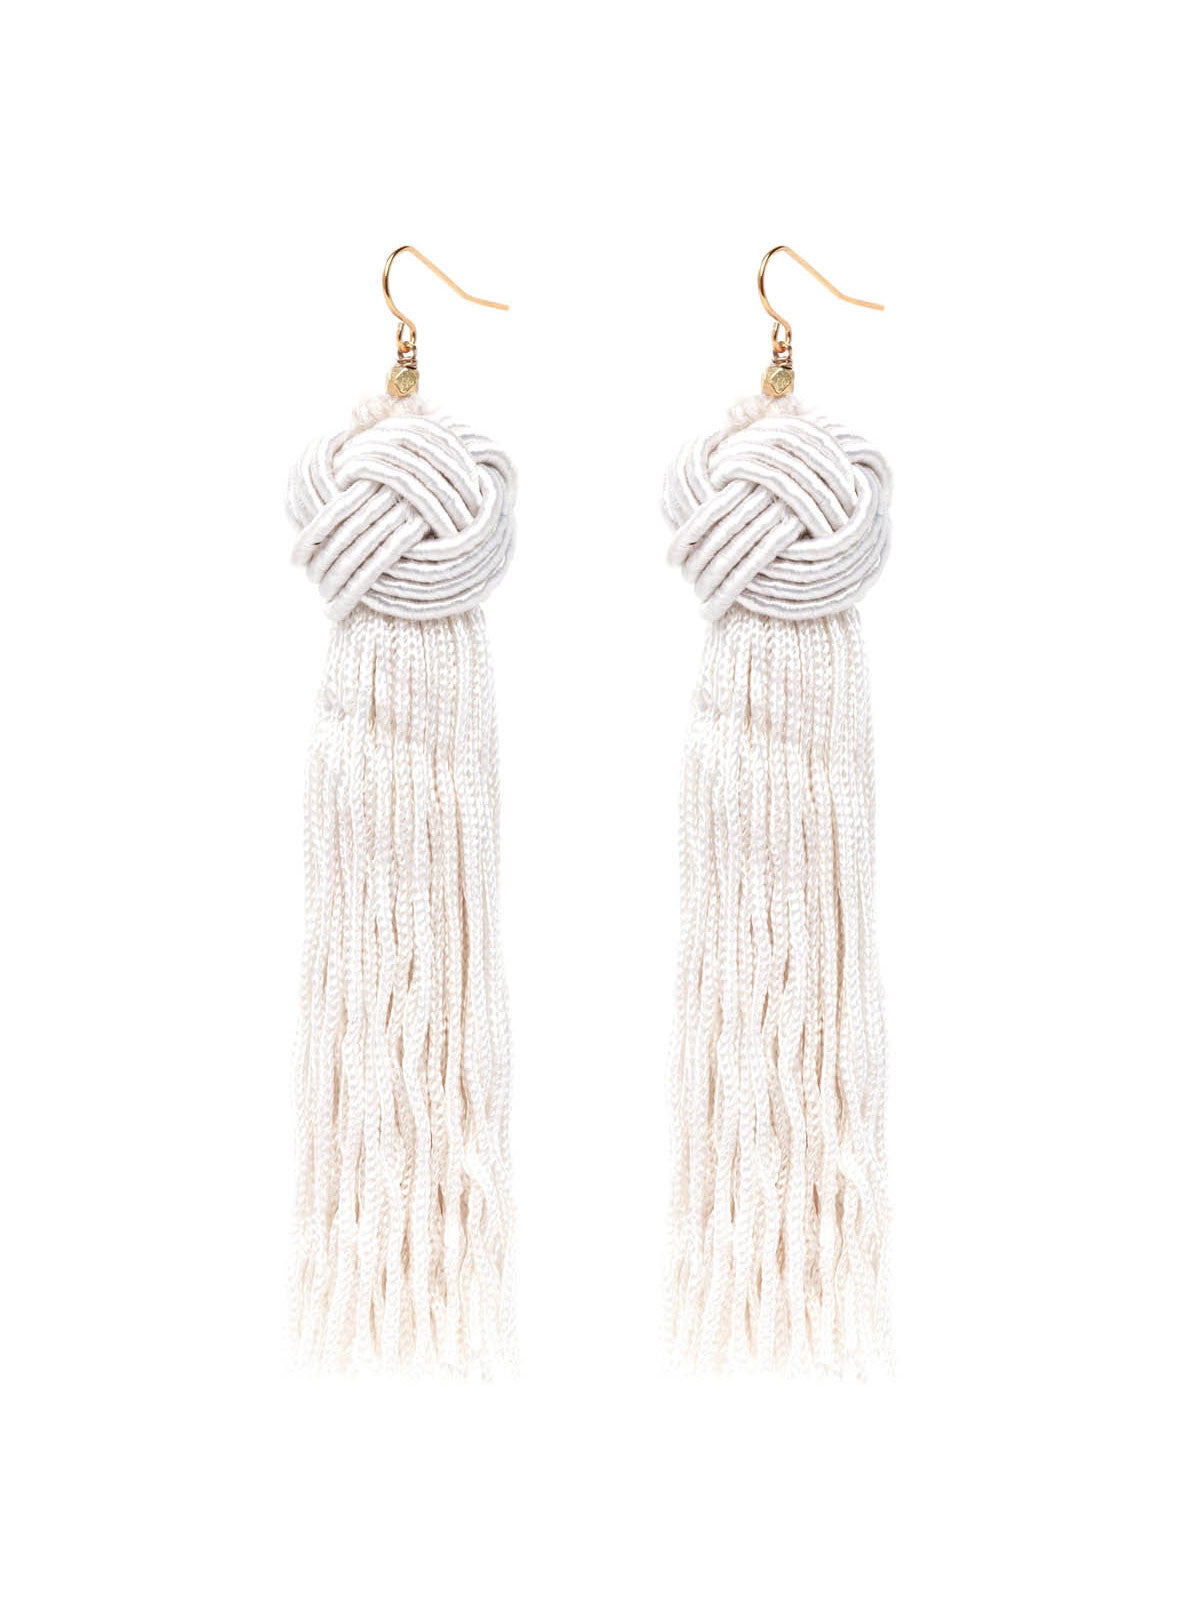 madewell p women tassel earrings tassle pdp enlarge shopmadewell jewelry